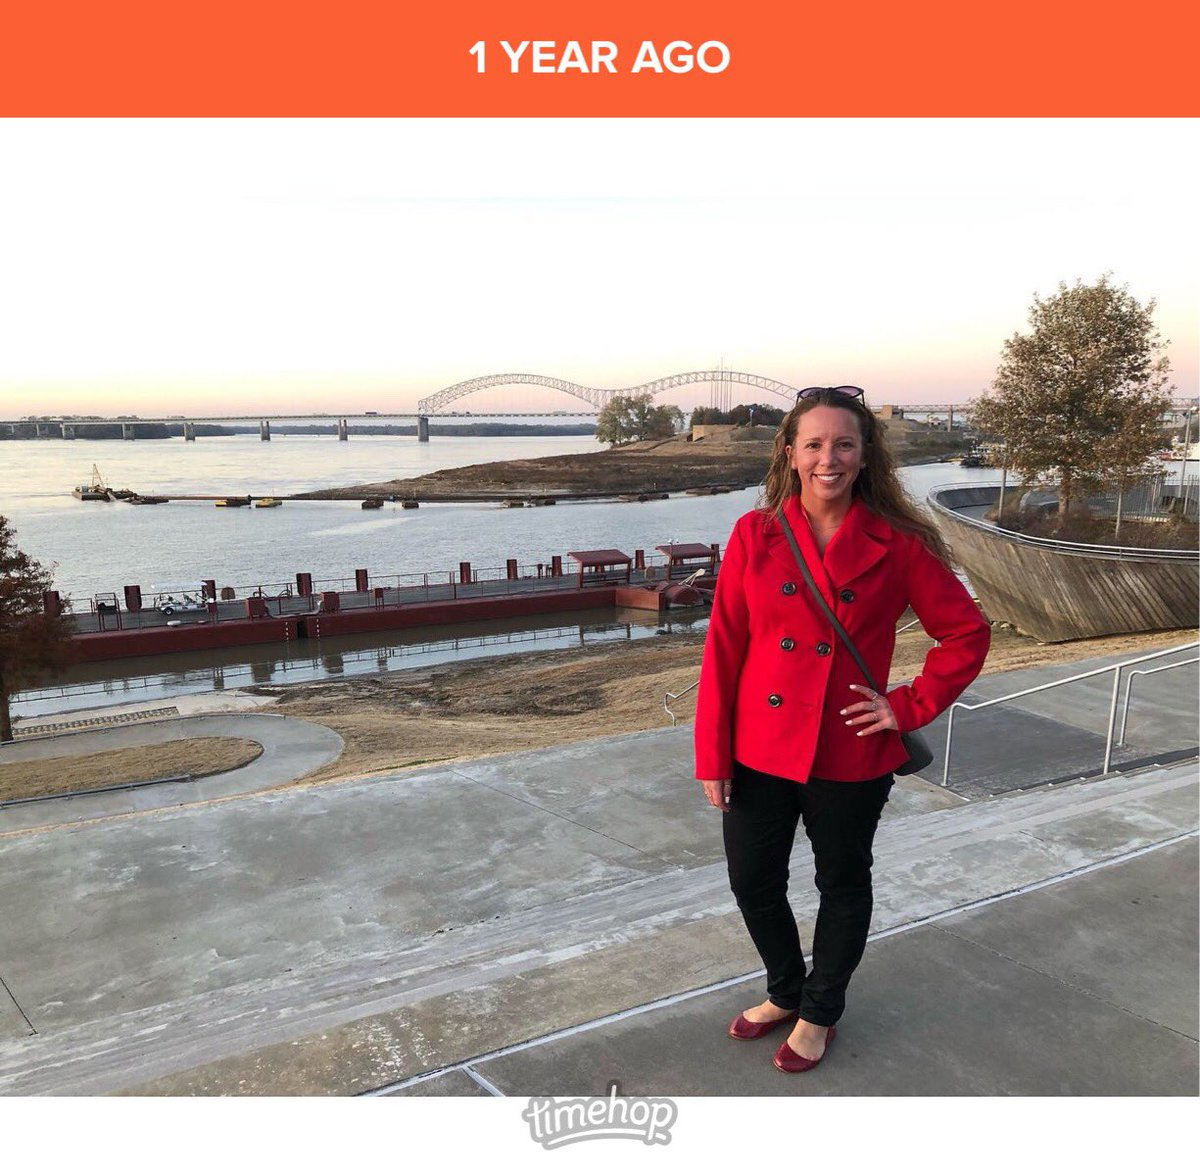 It's hard to believe a year ago I was in Memphis, representing Y108 at a radio conference at @StJude ❤️   It's amazing how life can change in a year, yet we continue to make the best of it 👏🏼 Thank you to everyone who continues to support both @Y108Pittsburgh & St. Jude!